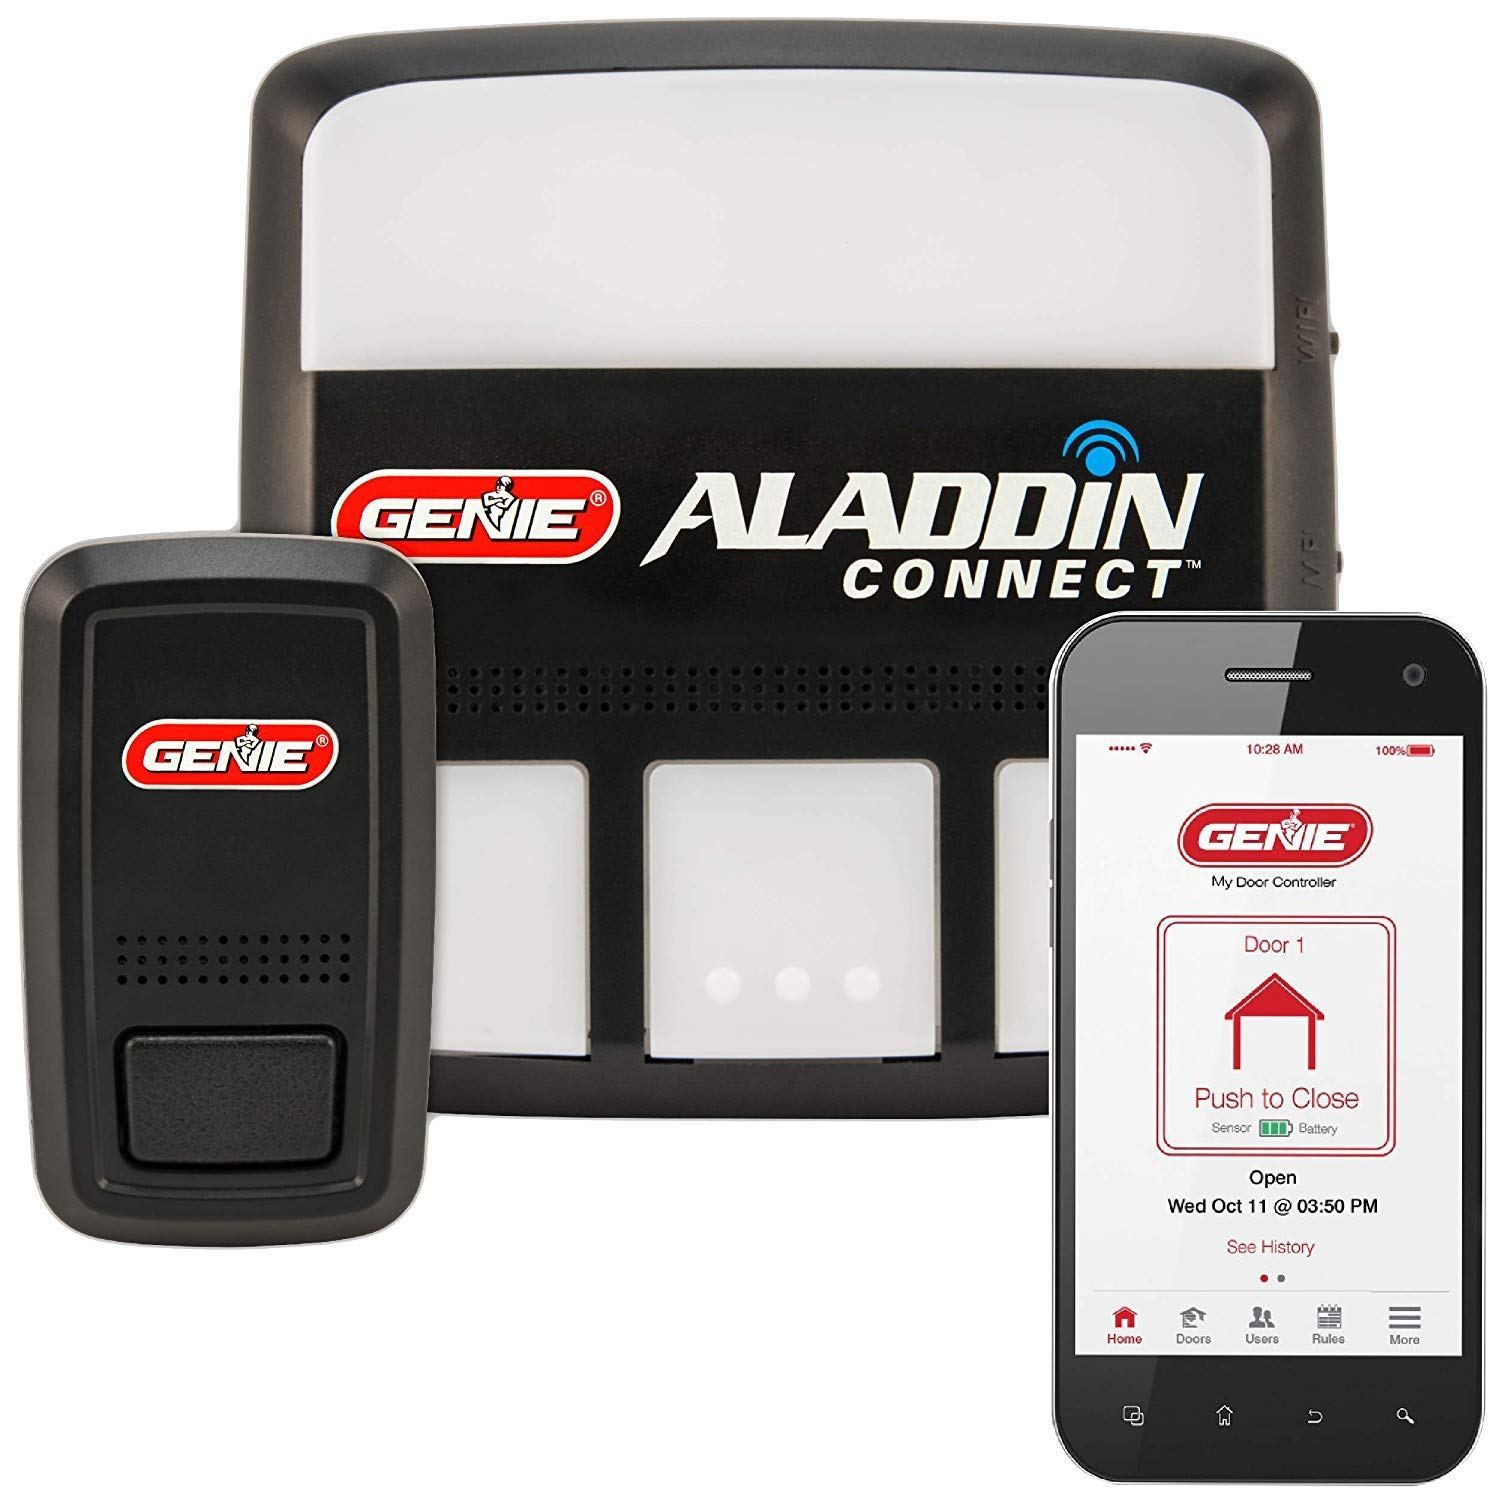 Genie Alkt1 R Aladdin Connect Smartphone Garage Door Opener C Monitor Open Close Your Garage Door From Anywhere Item Is Brand New Will Ship In Brown Box Not In Gift Box